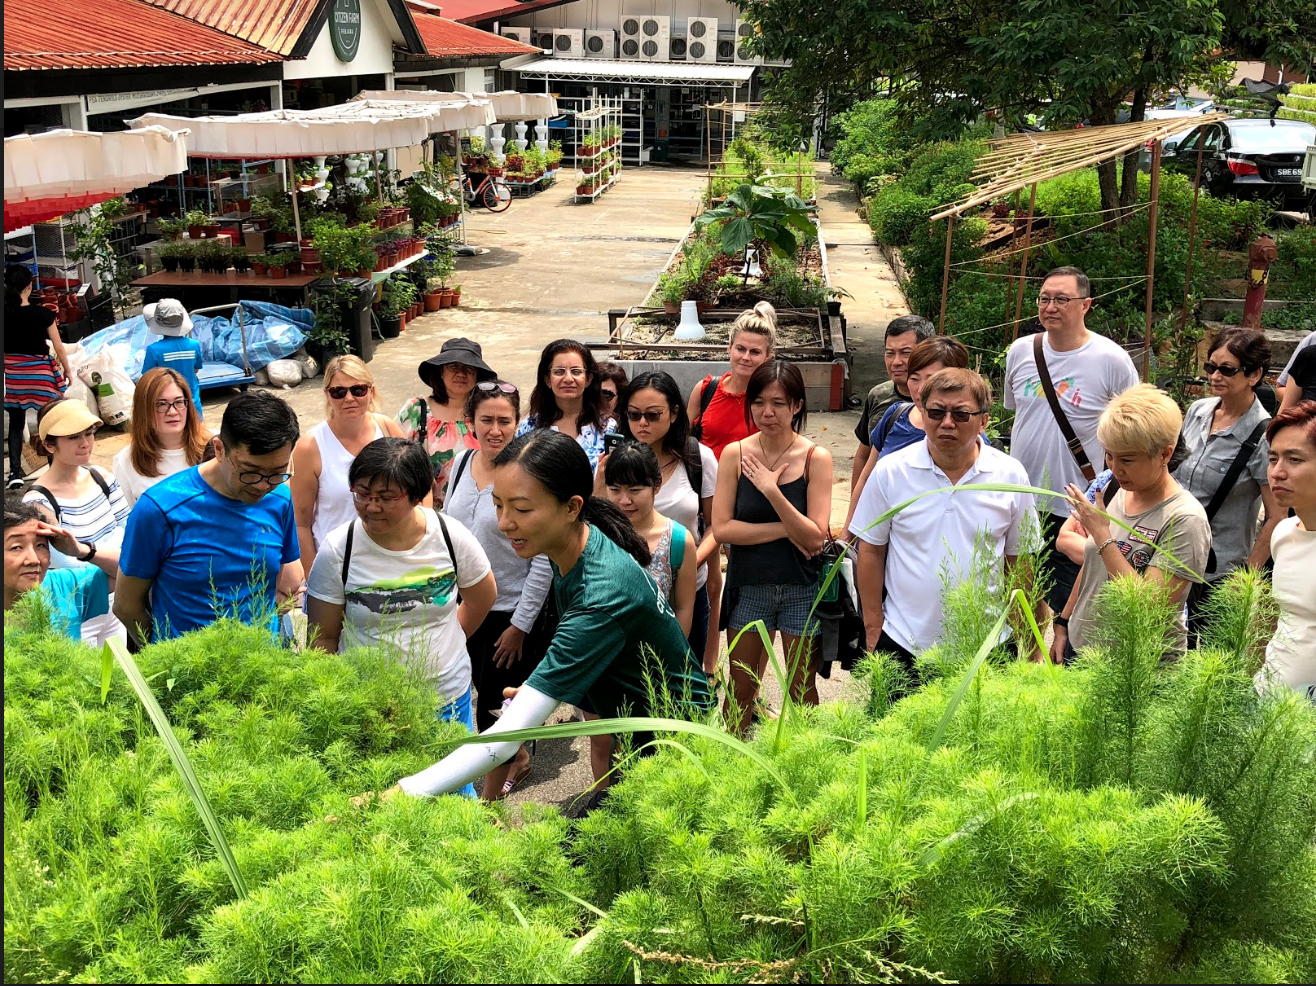 Edible Garden City conducts regular workshops and outreach, to empower and teach Singaporeans to grow their own food. Photo credit: Edible Garden City.